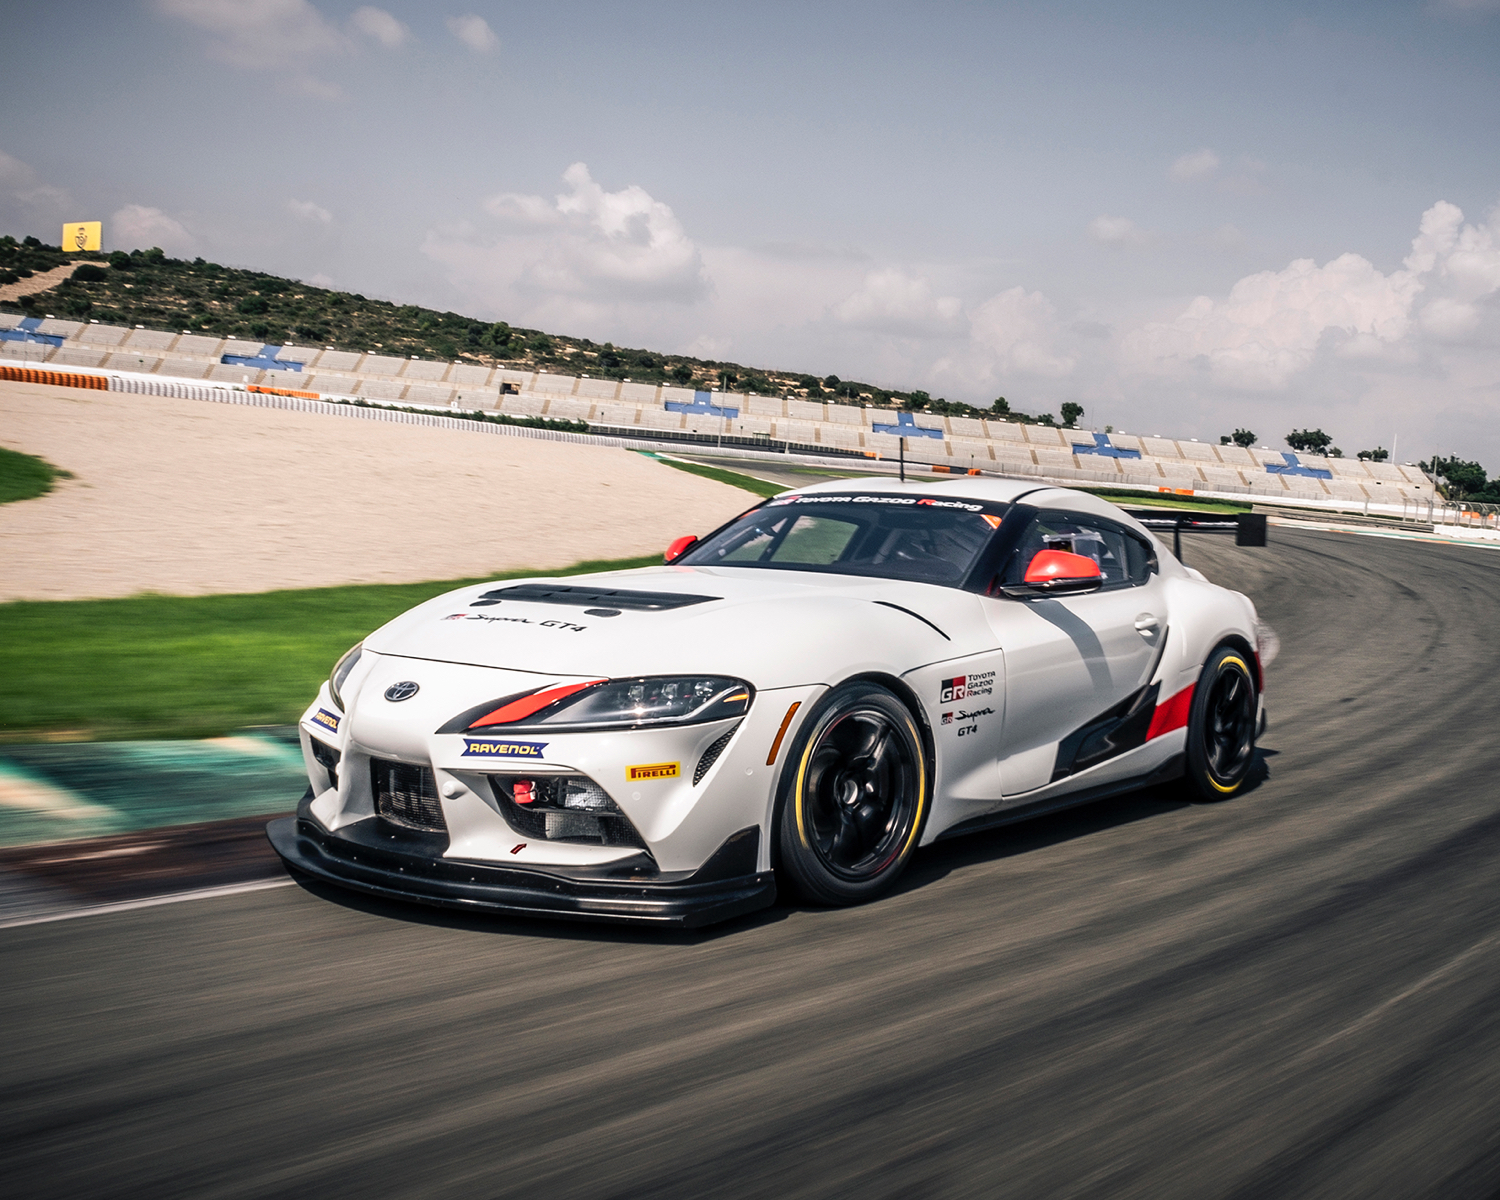 2021 GR Supra 3.0 shown in Absolute zero